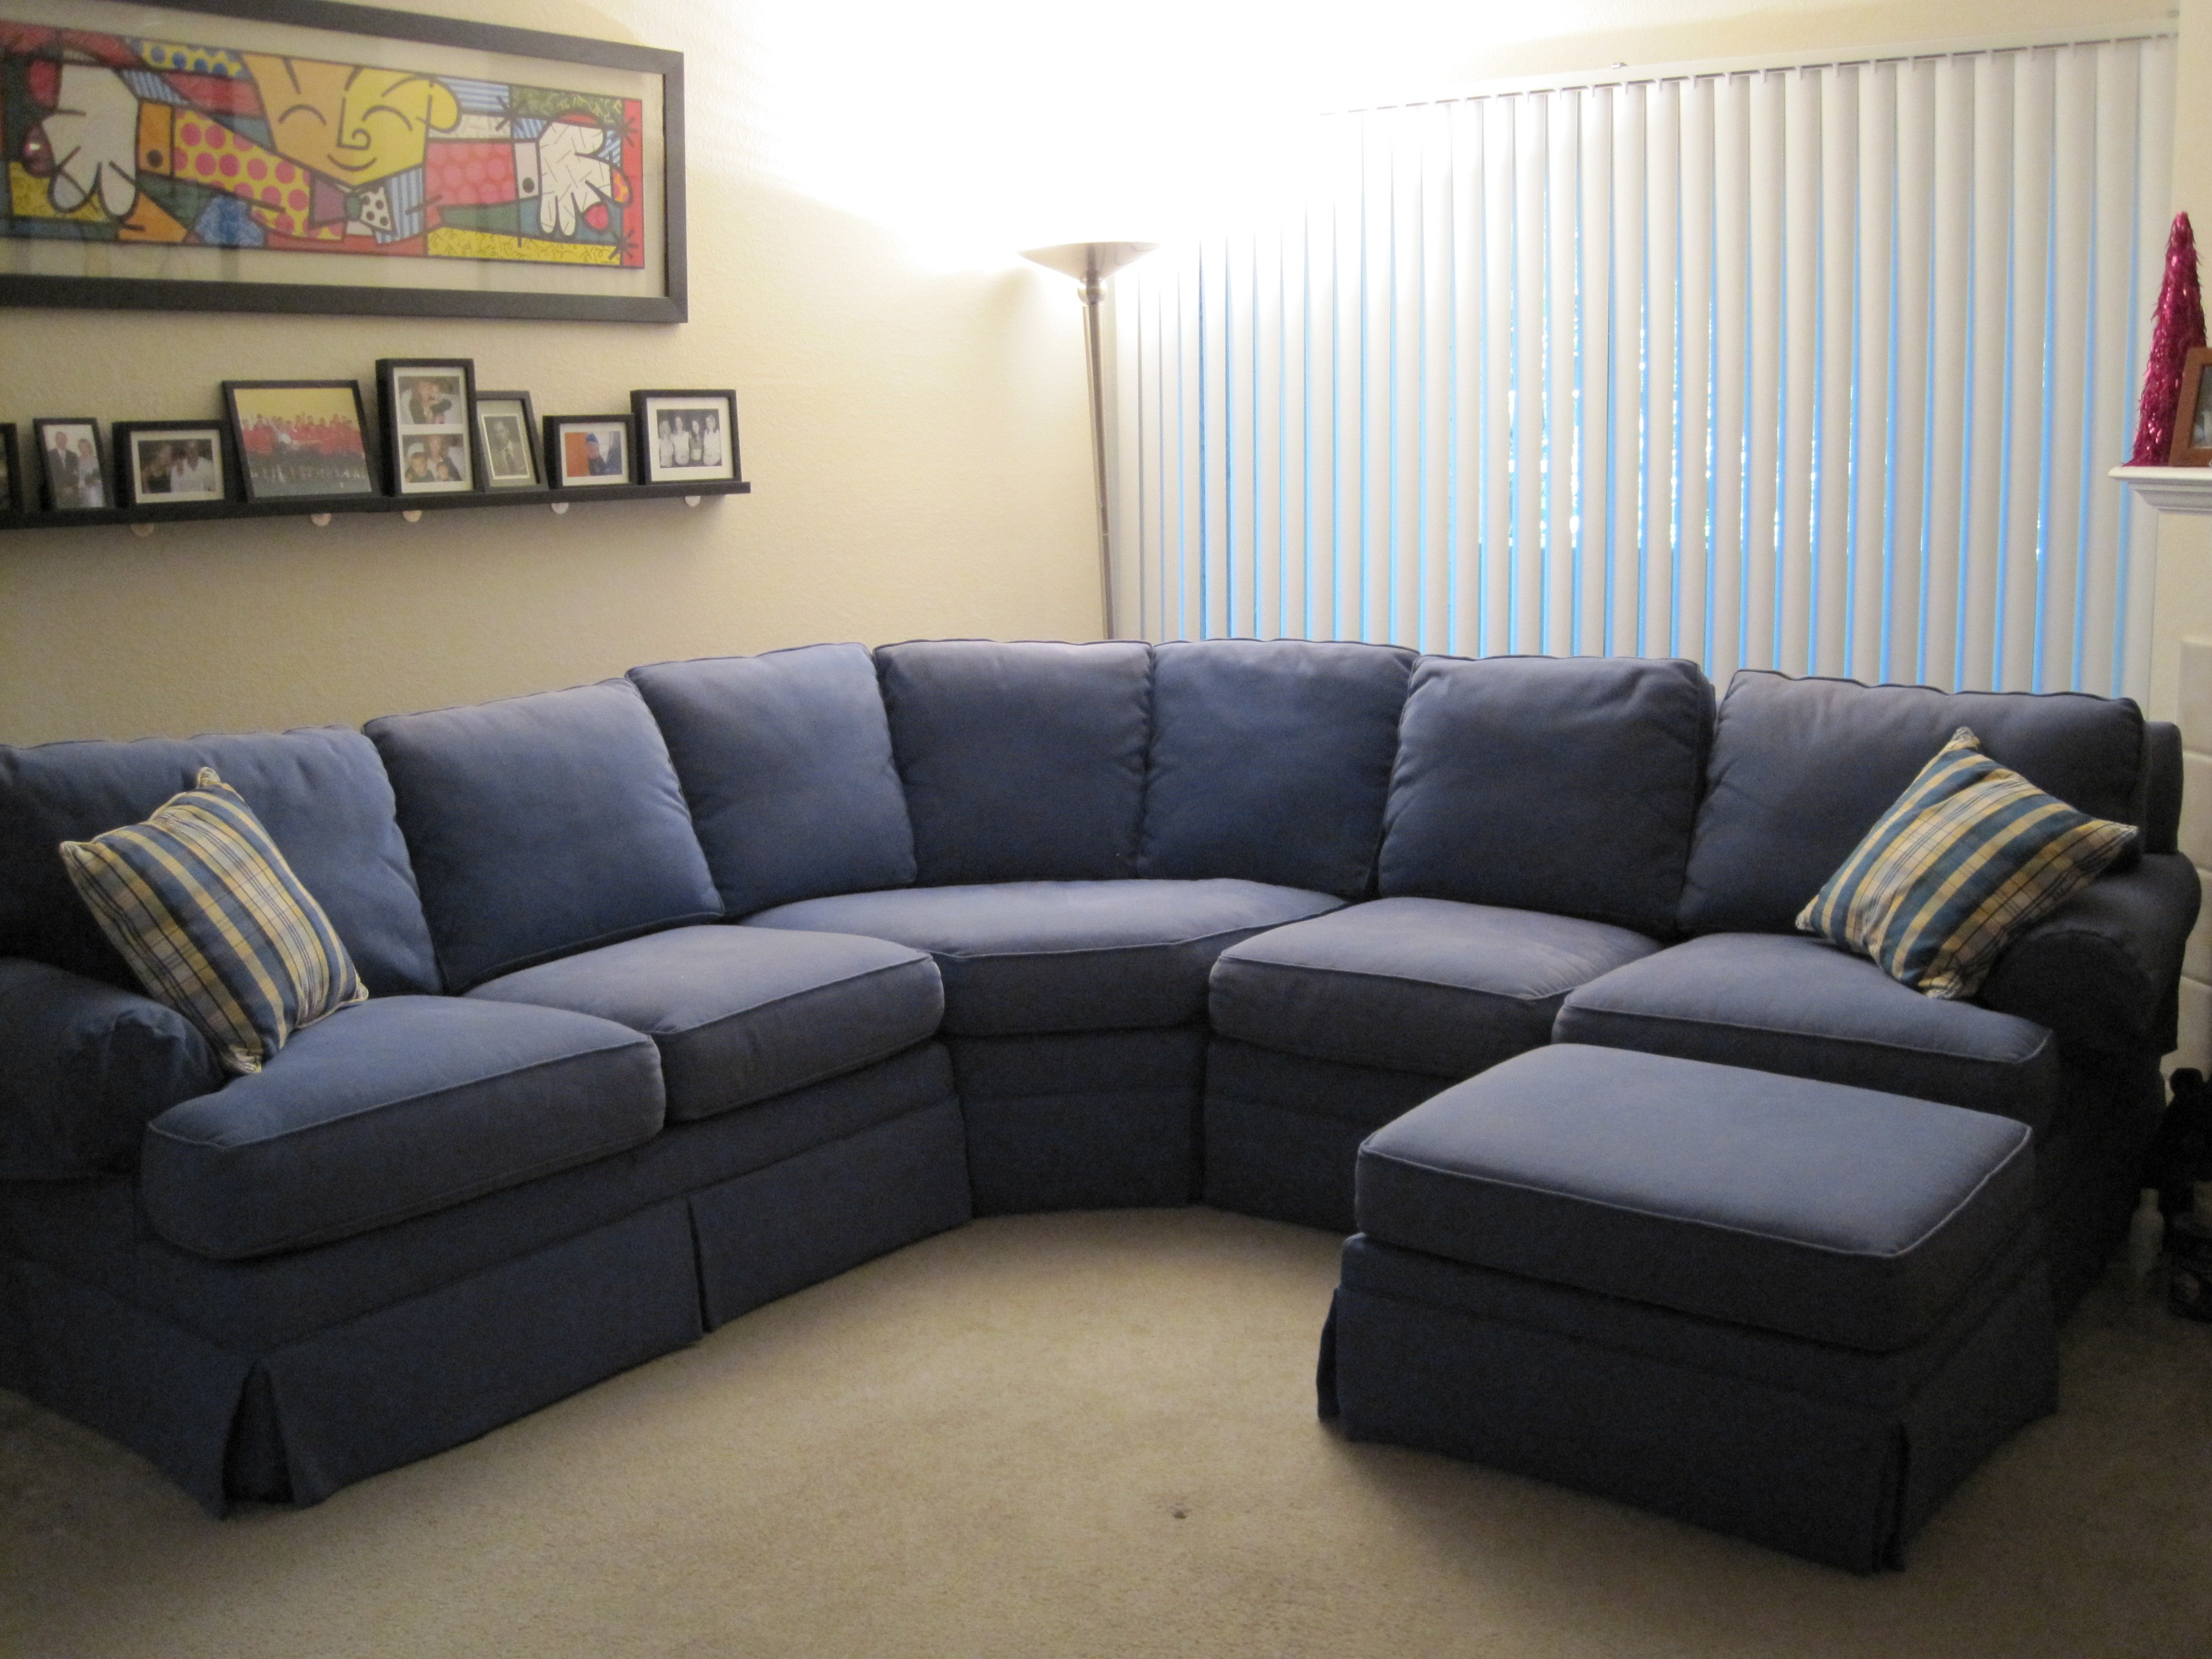 blue leather sectional sofa with chaise ... chaise; sofas navy blue leather furniture royal blue couch sectional CIGLXRL